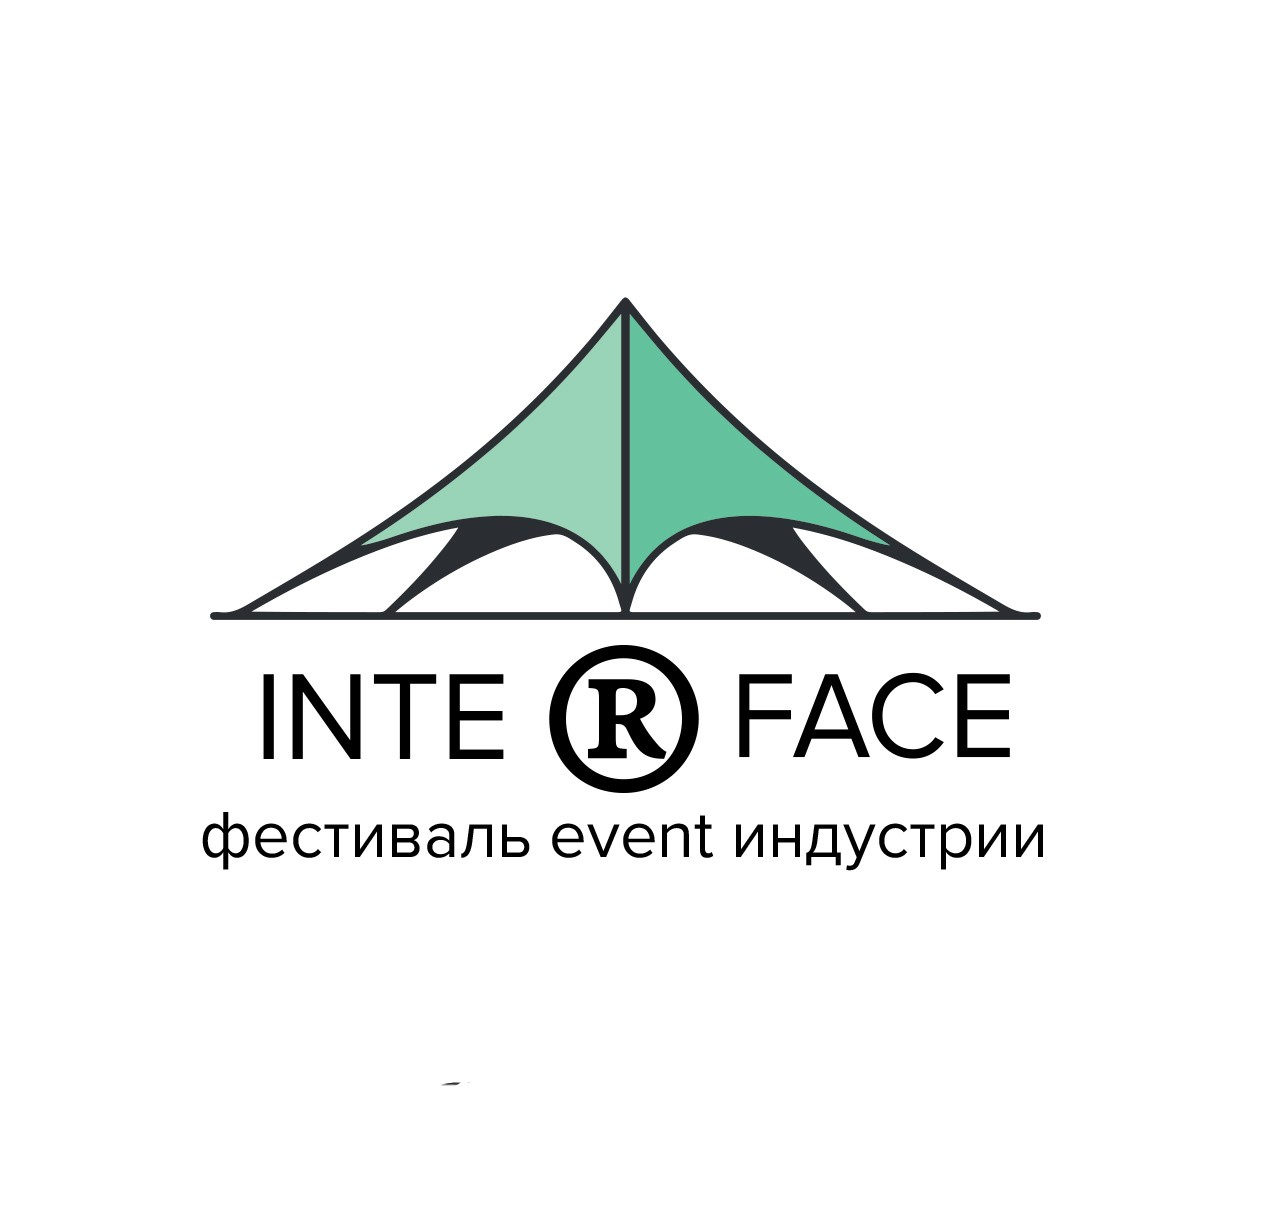 interfaceЛого